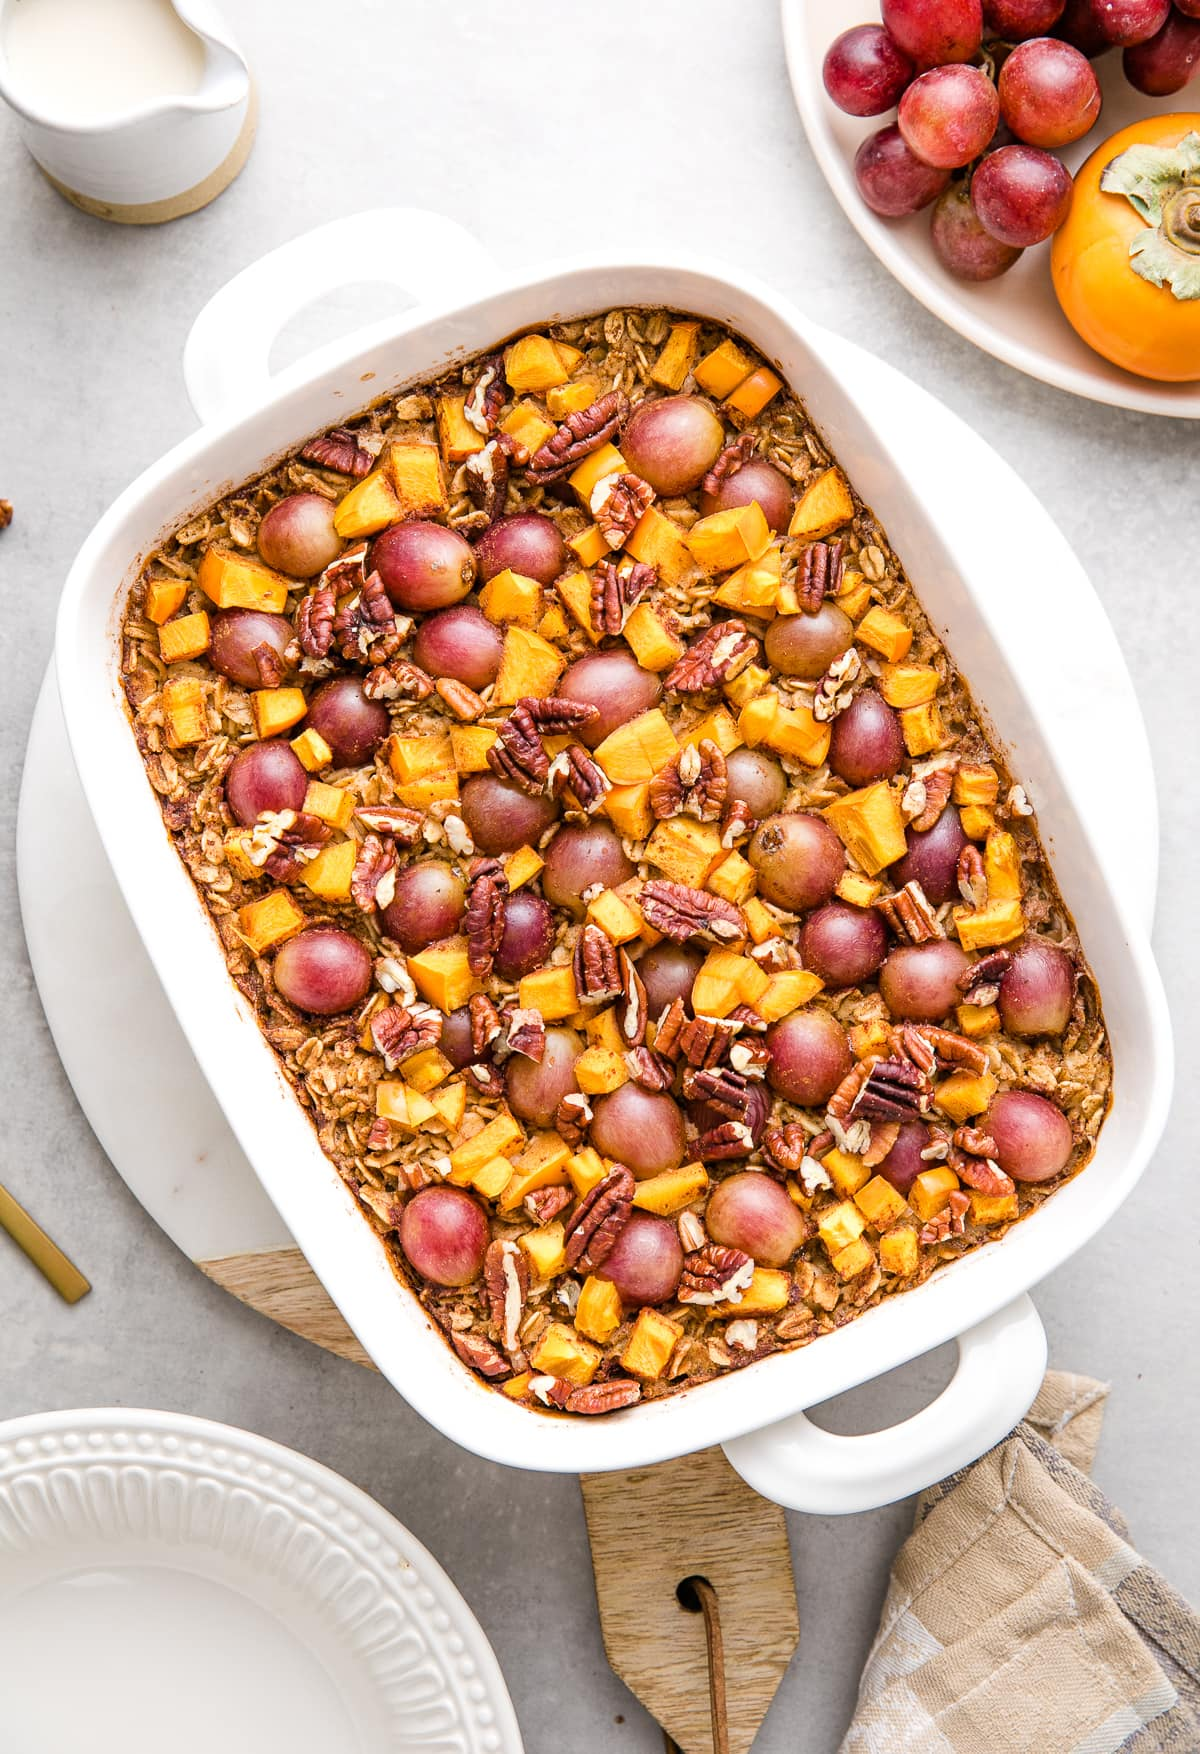 top down view of freshly made persimmon and grape baked oatmeal.